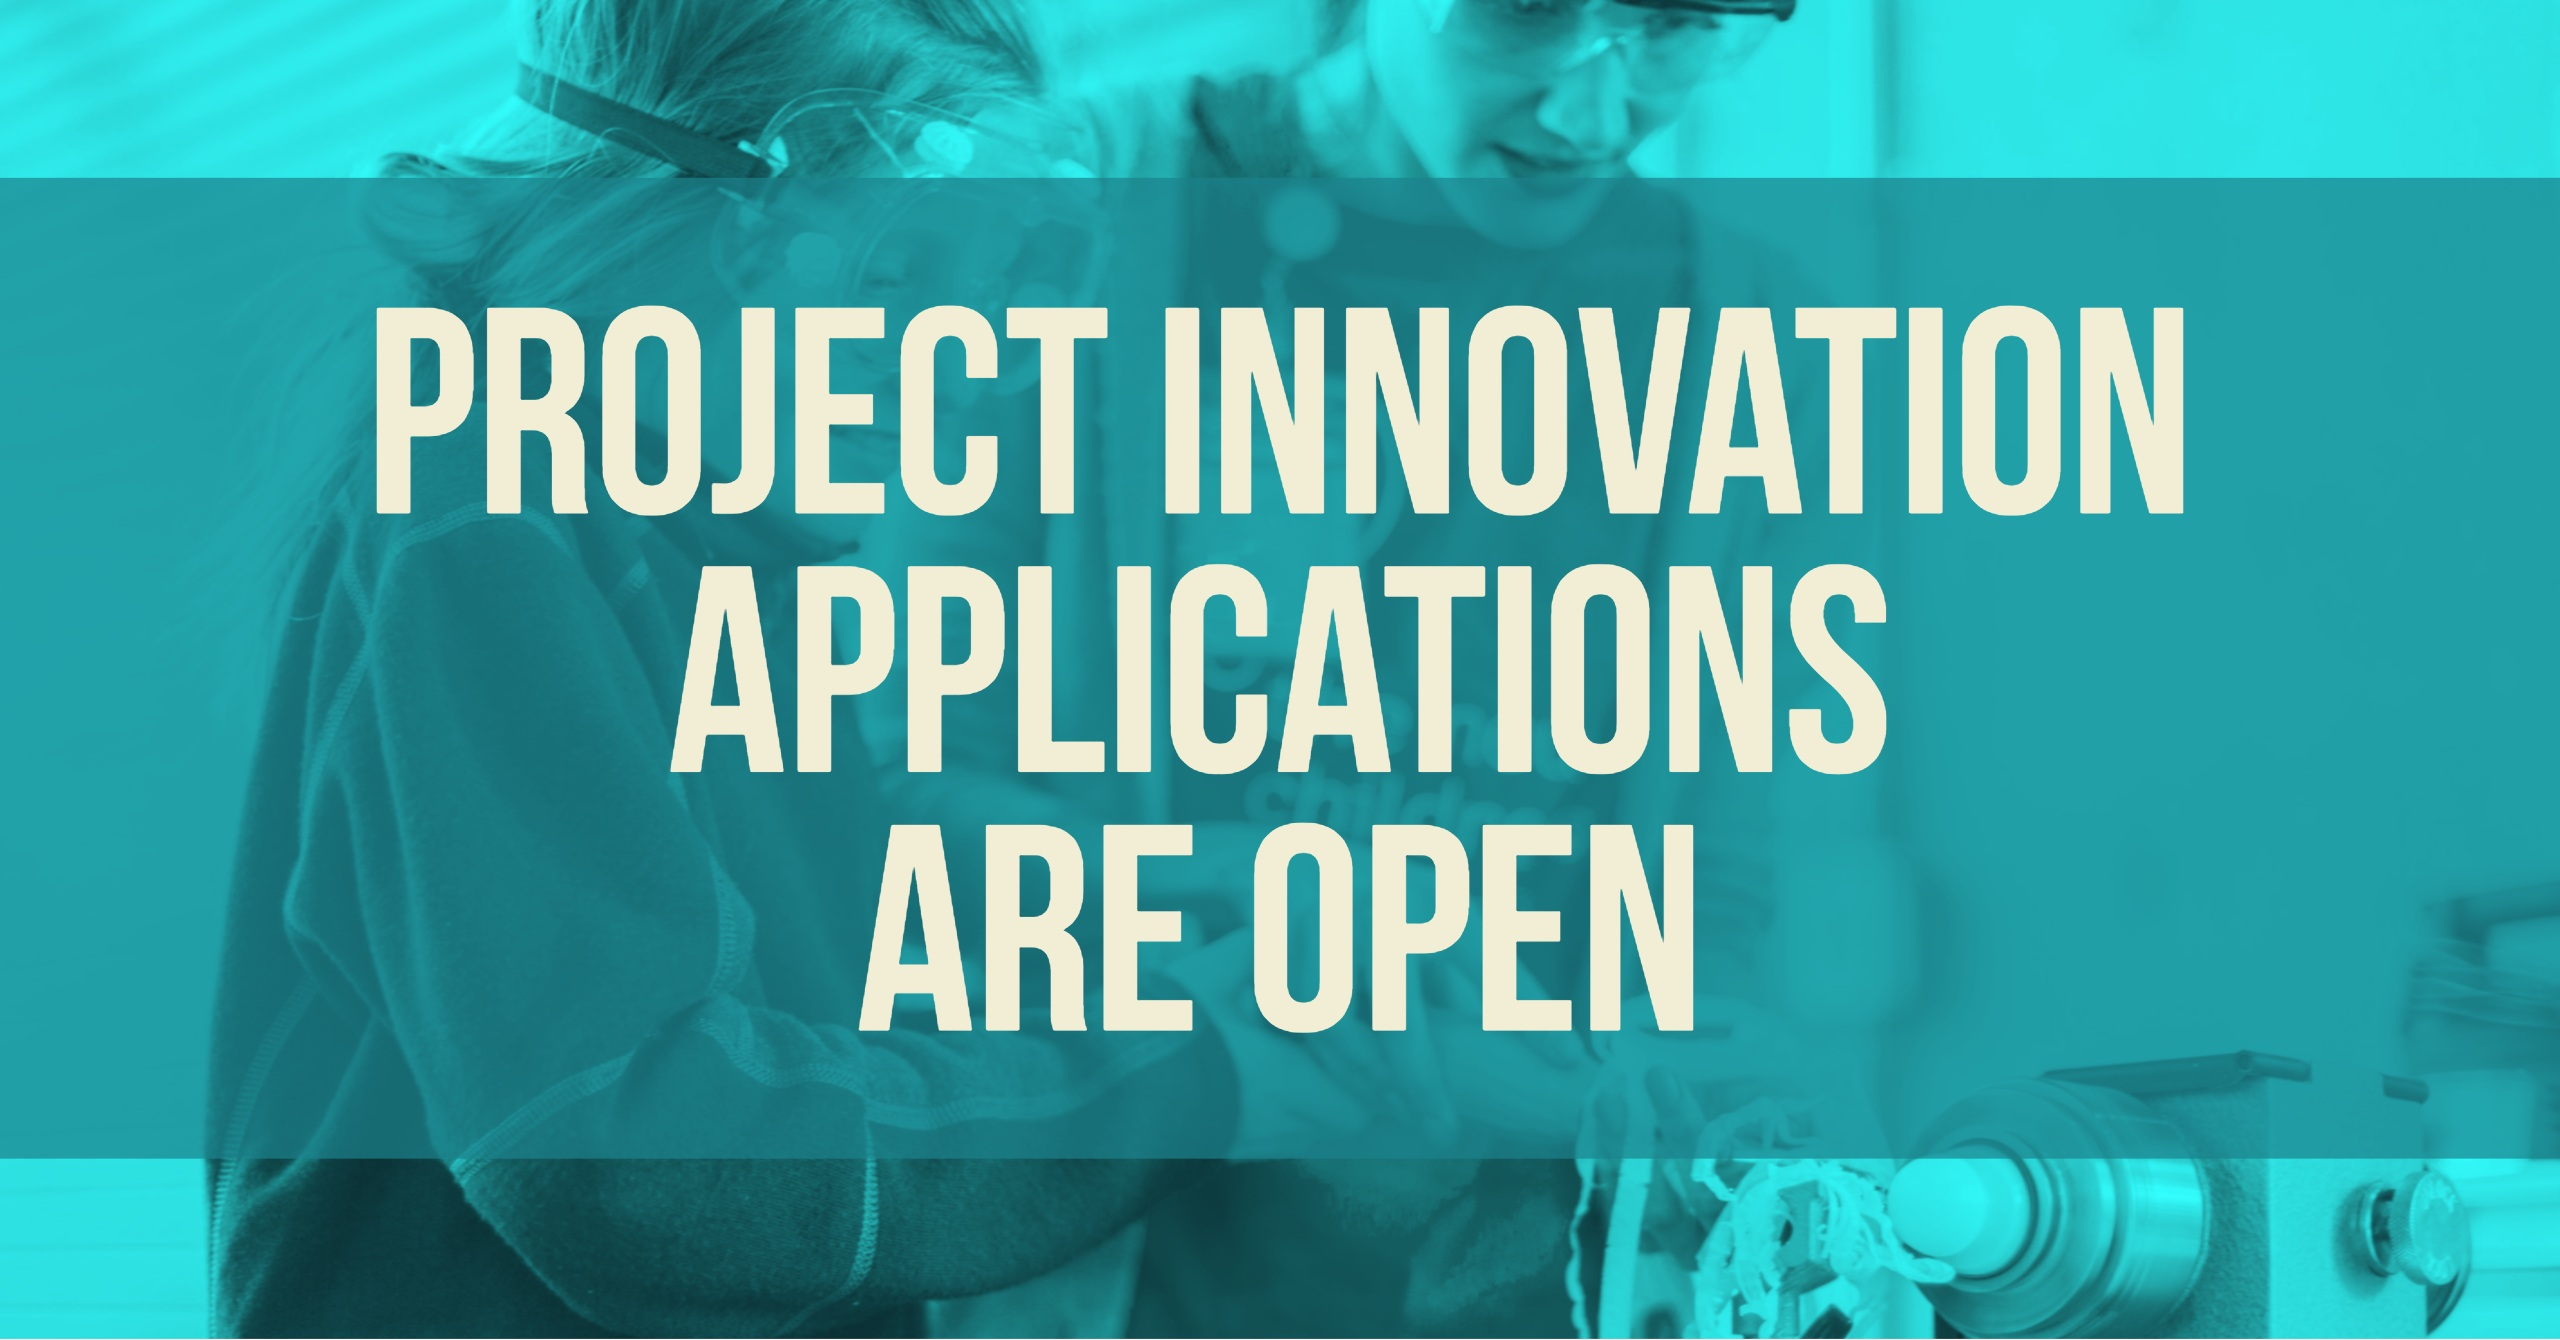 Project Innovation Applications Are Open